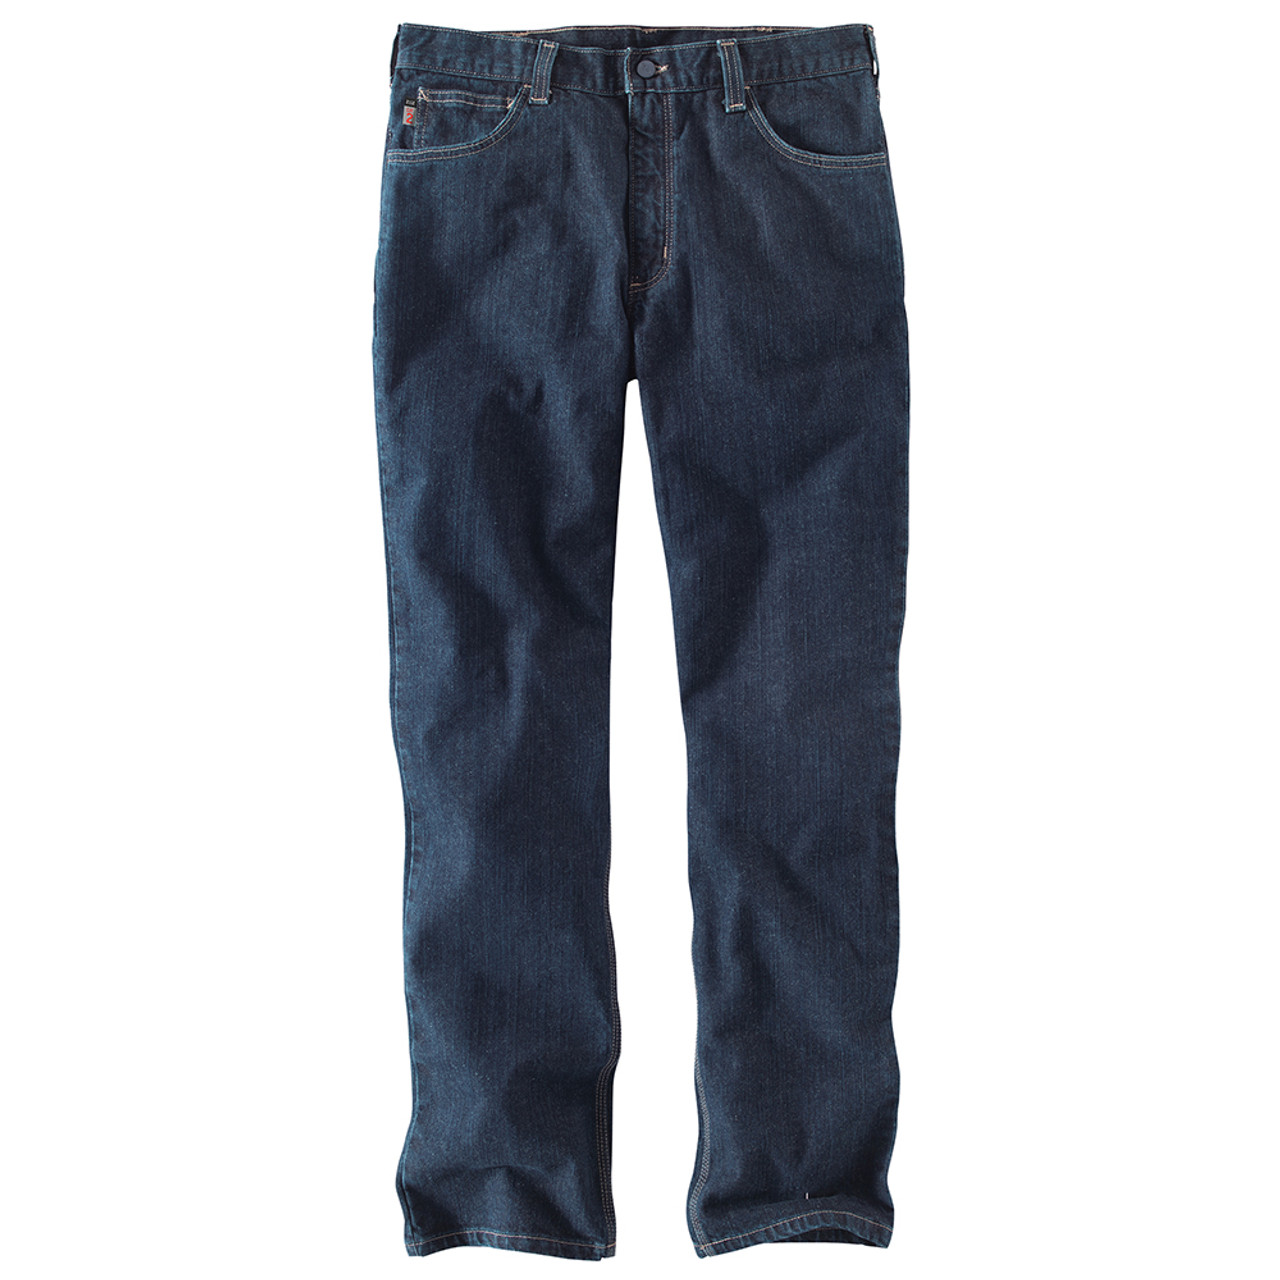 570353a3c69a 101814 Men s Flame Resistant Rugged Flex Jean Straight Trdl Fit